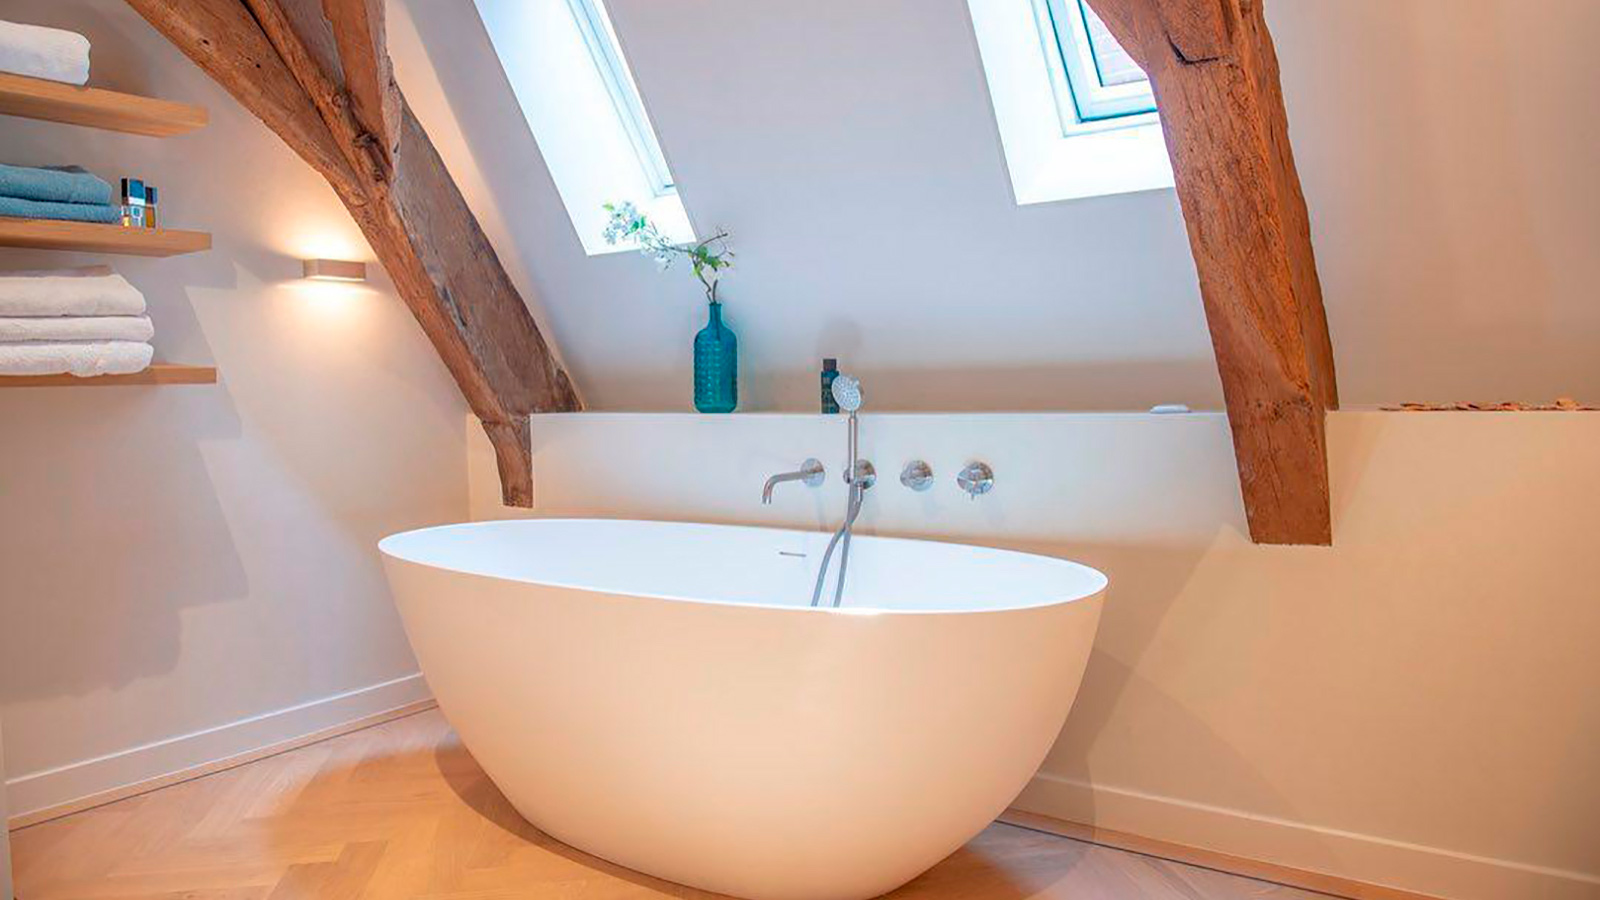 Come decorare un bagno con soffitto inclinato